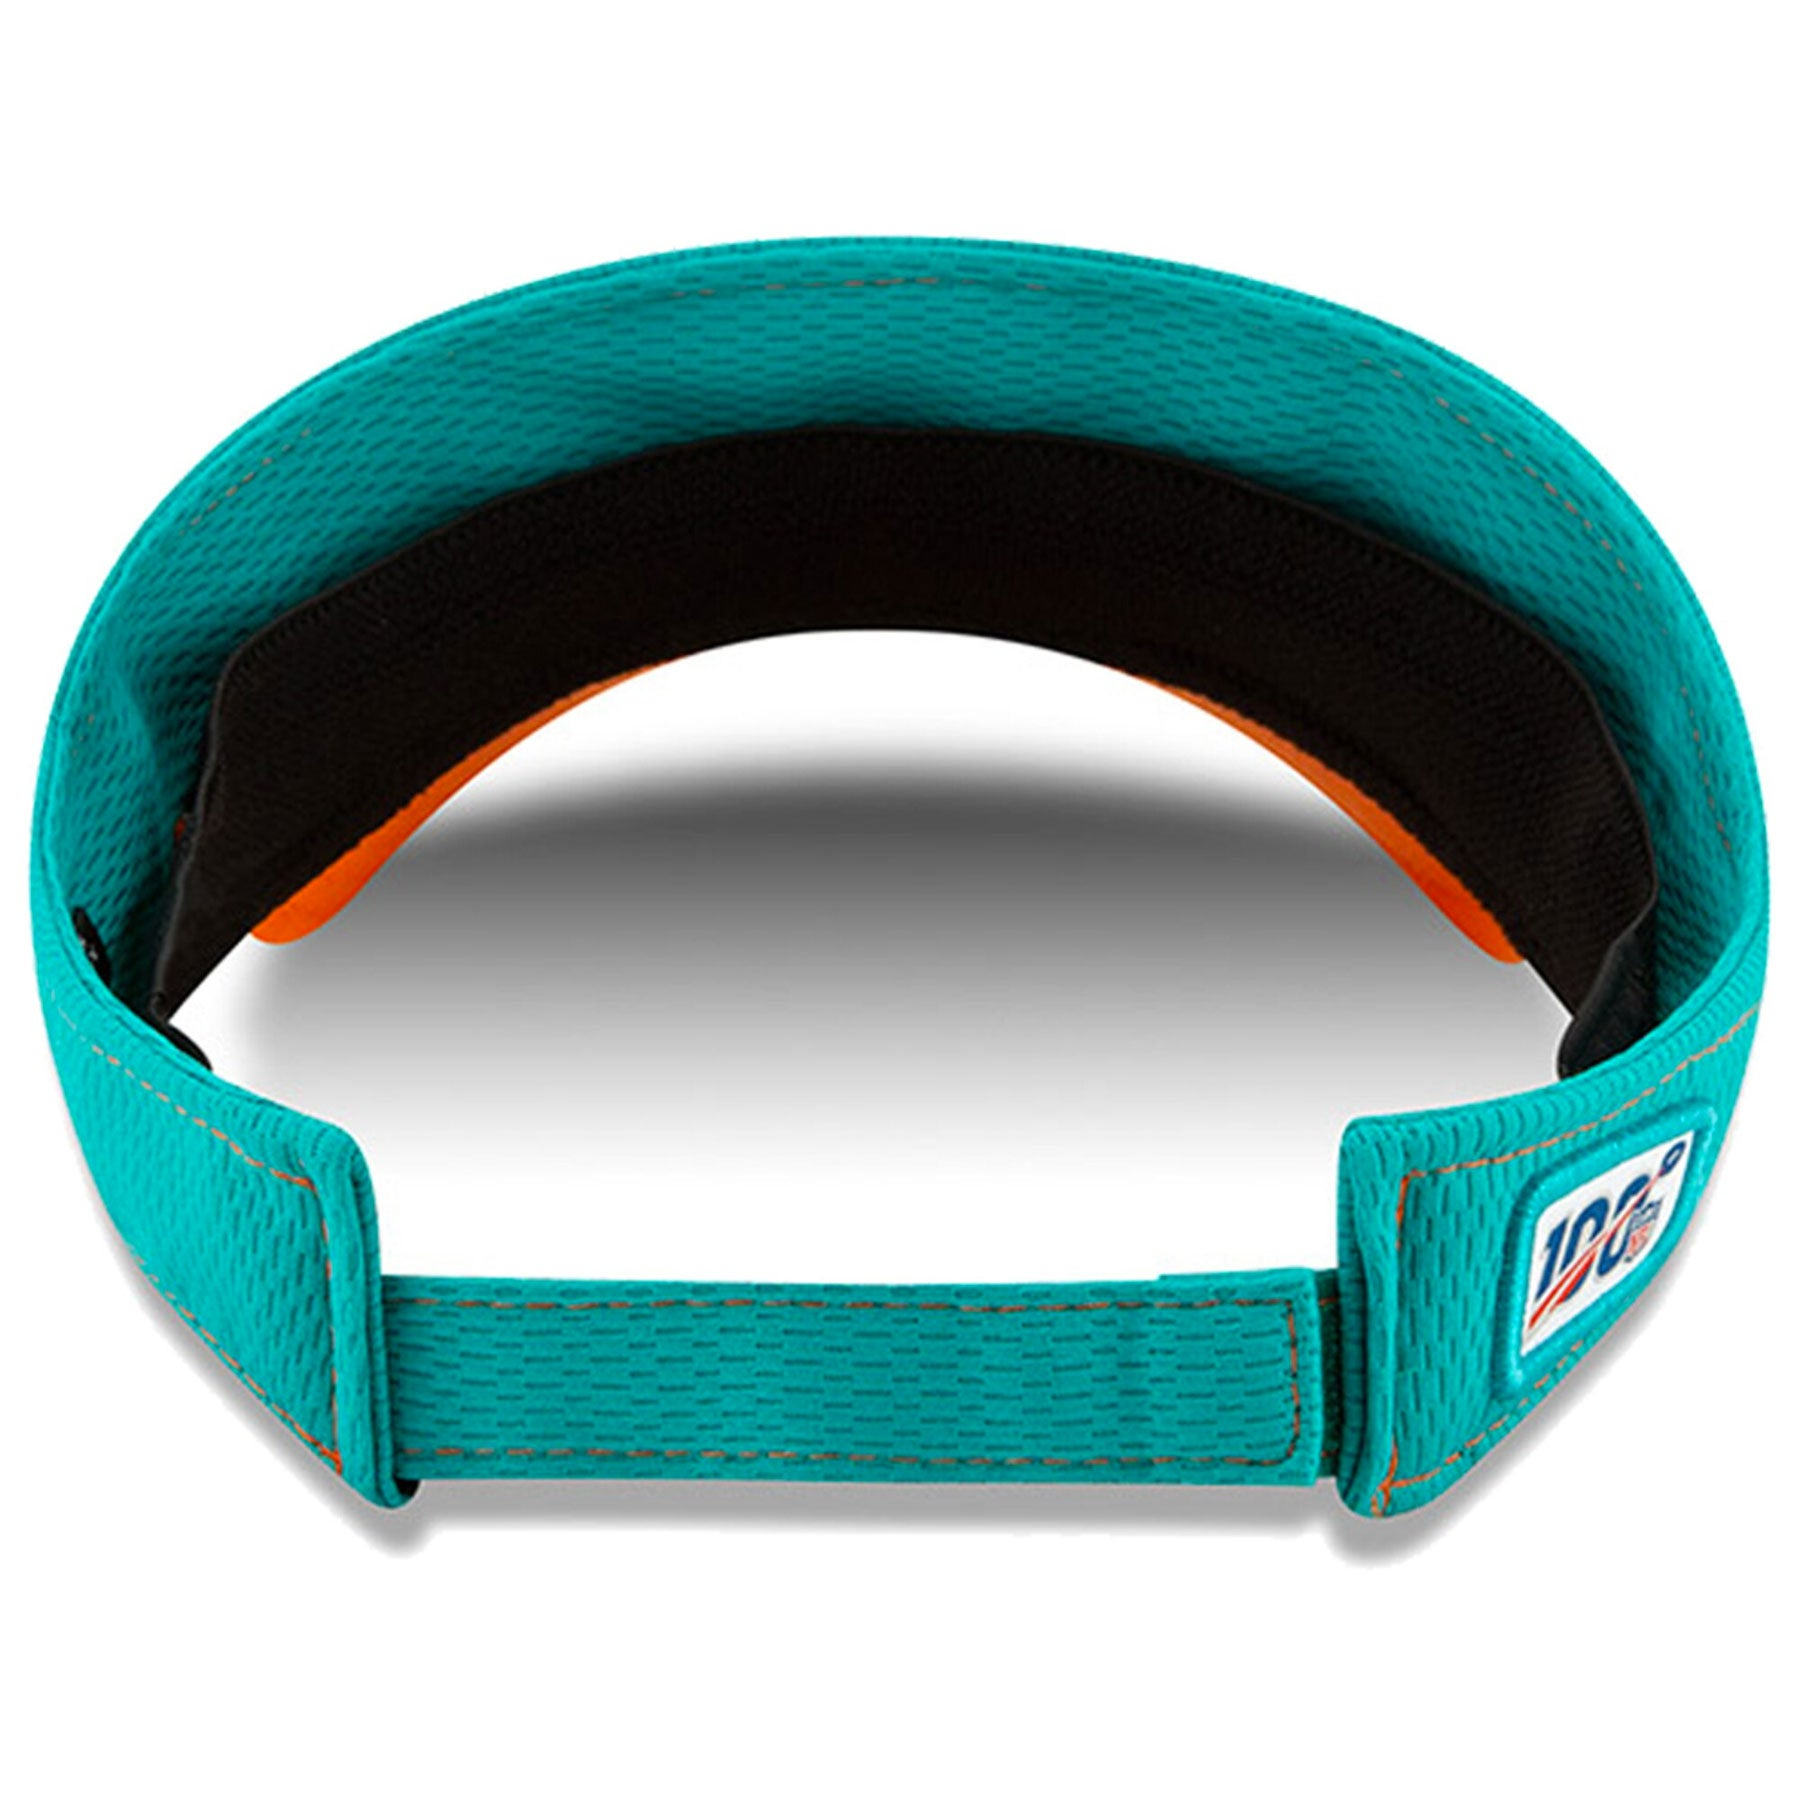 964bd74a Men's Miami Dolphins New Era Aqua 2019 NFL On Field Sideline Road Official  Teal Visor